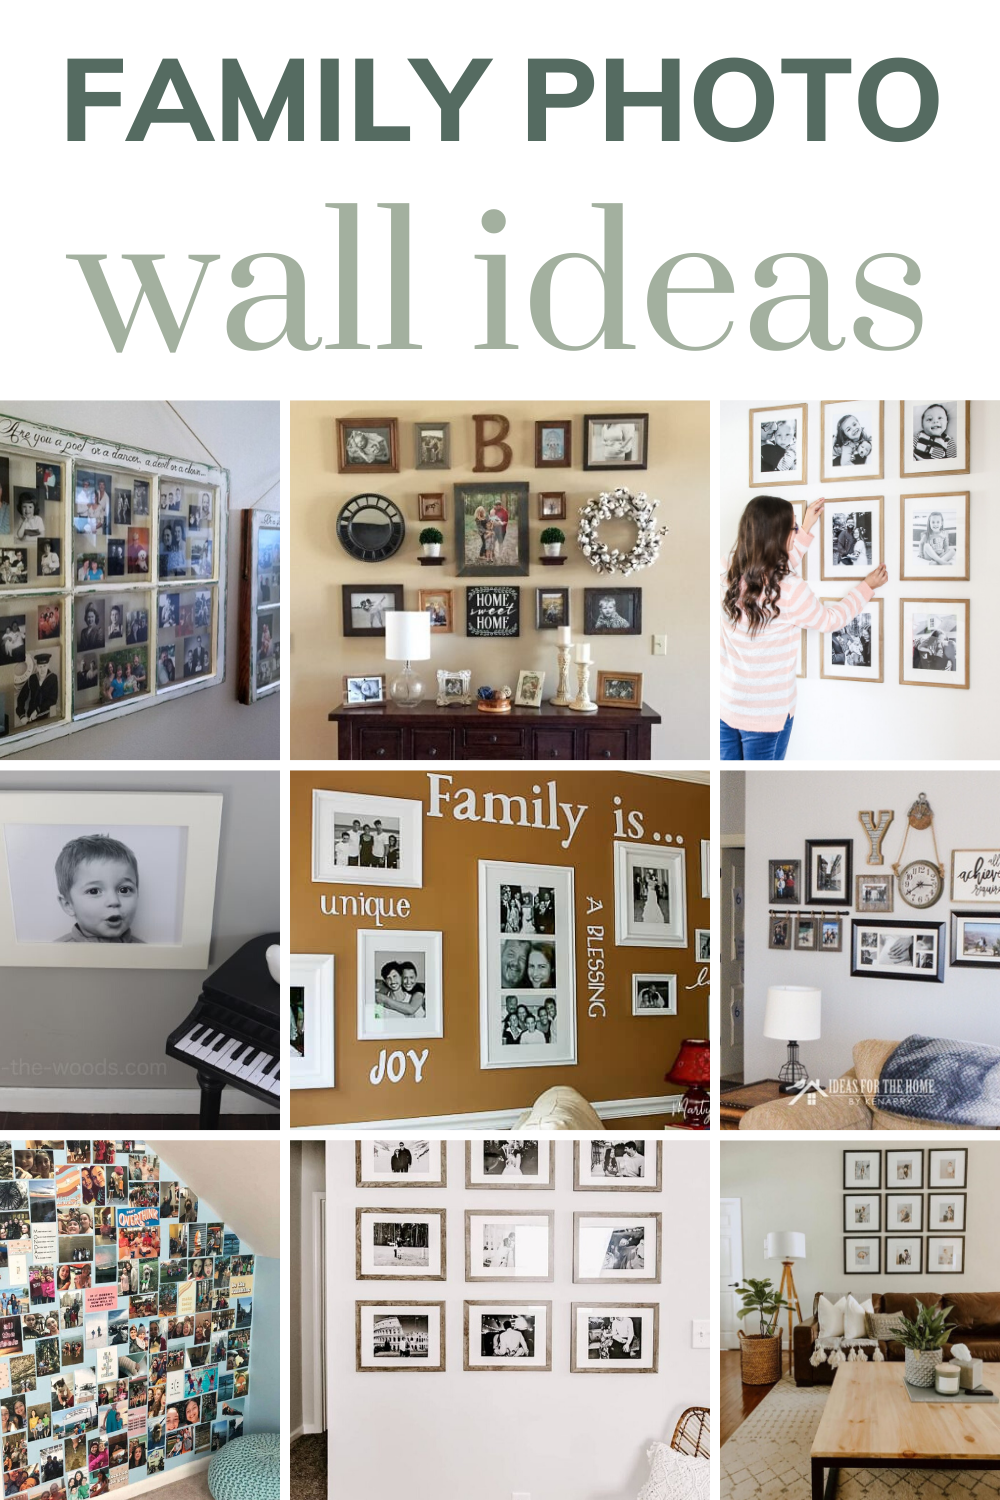 Check Out This Post For More Inspiration On How To Display Family Photos In Your Home Like In T In 2020 Family Photo Wall Family Photo Display Wall Photo Wall Display